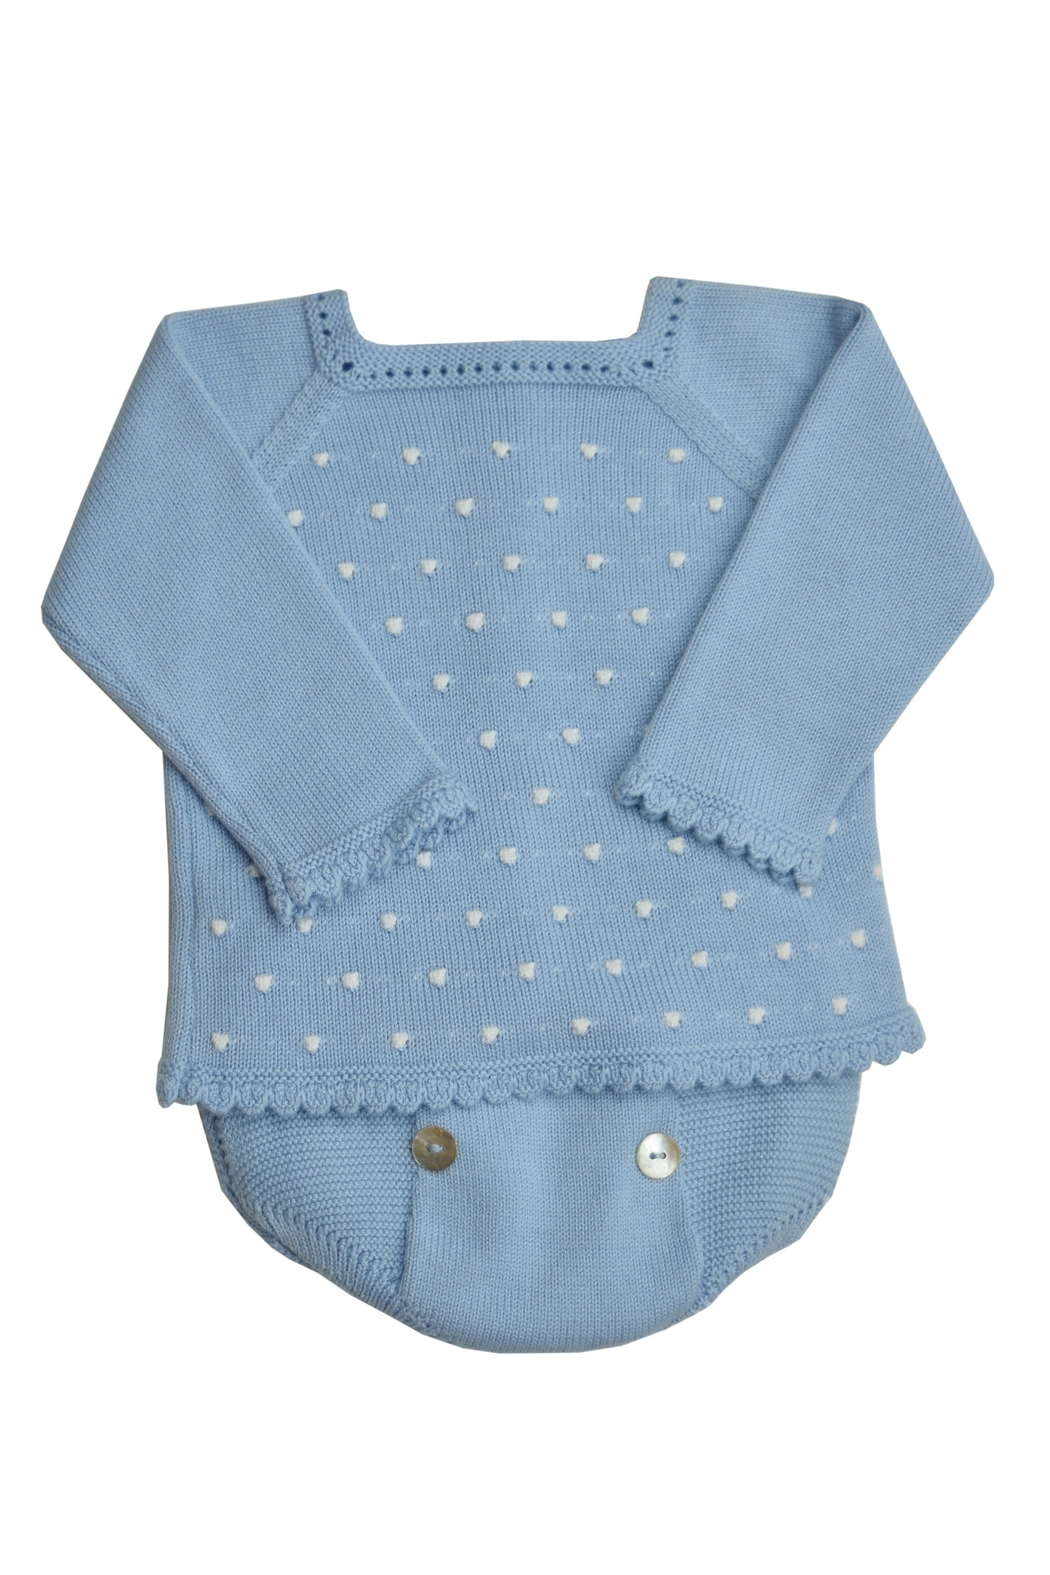 Granlei 1980 Blue Knit Set - Front Cropped Image